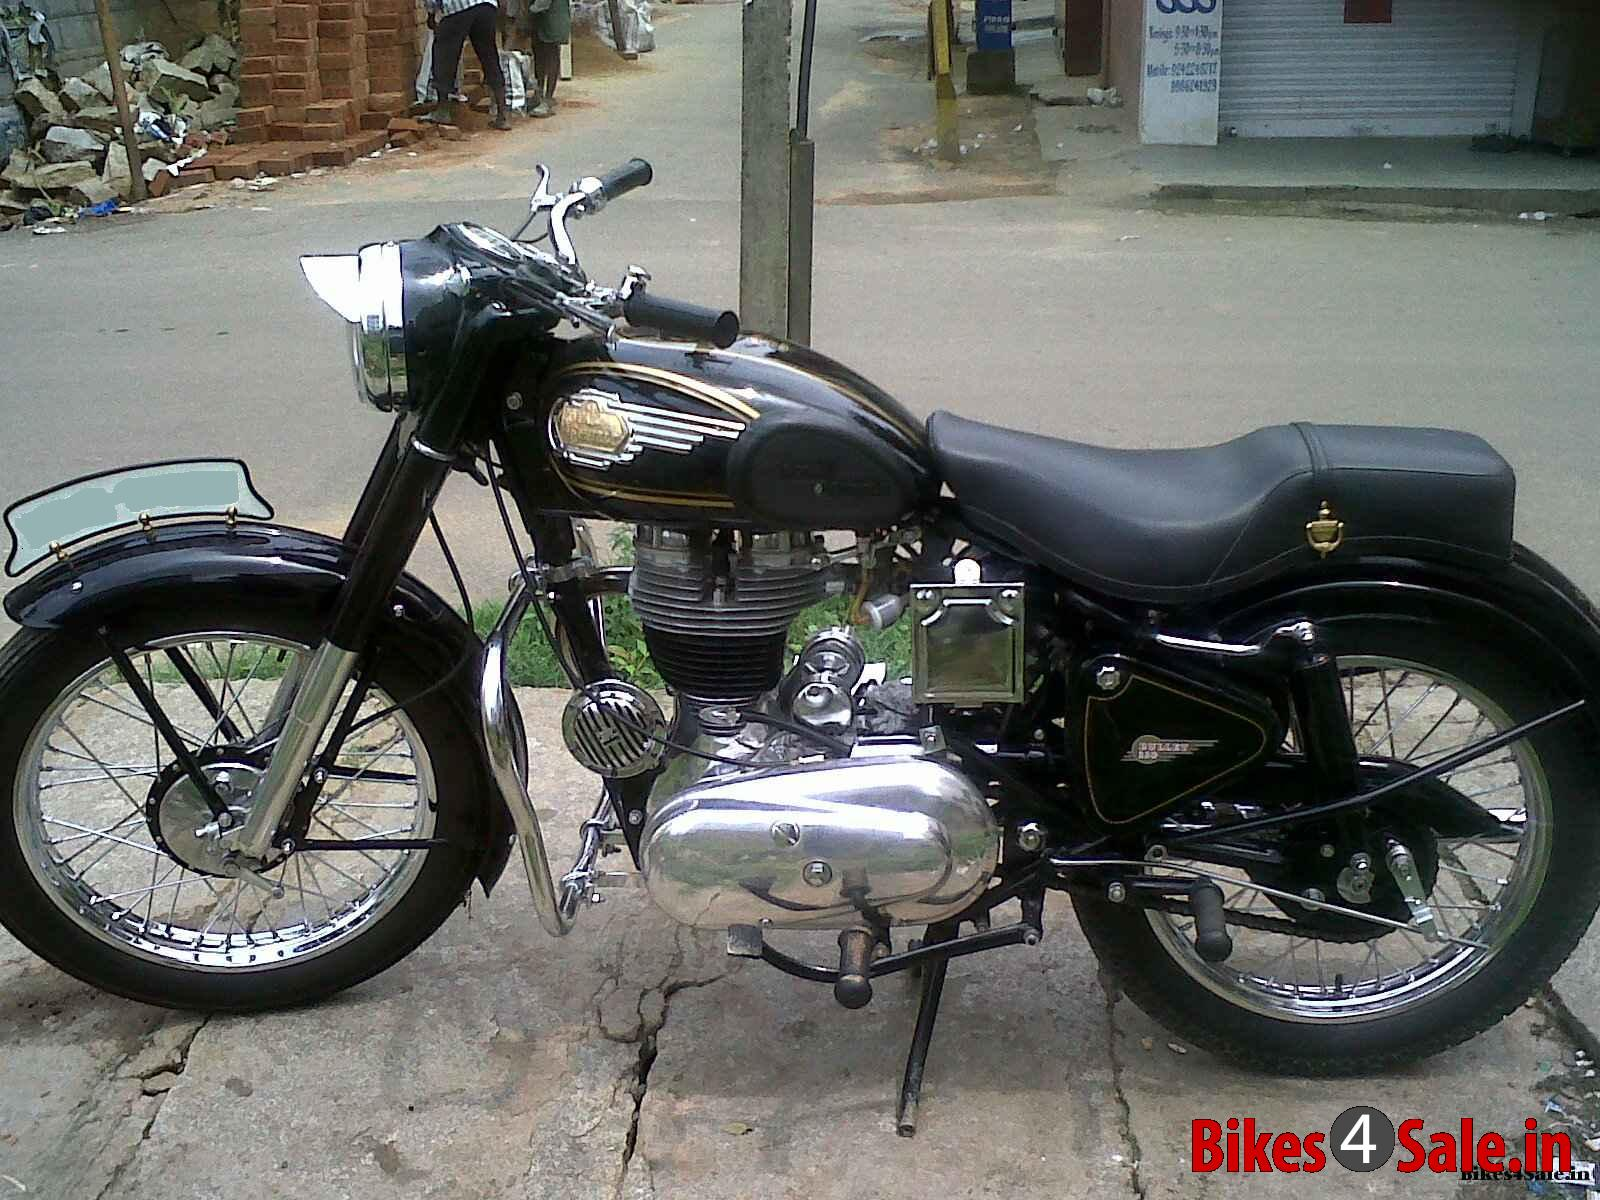 2003 Enfield 350 Bullet Classic #5